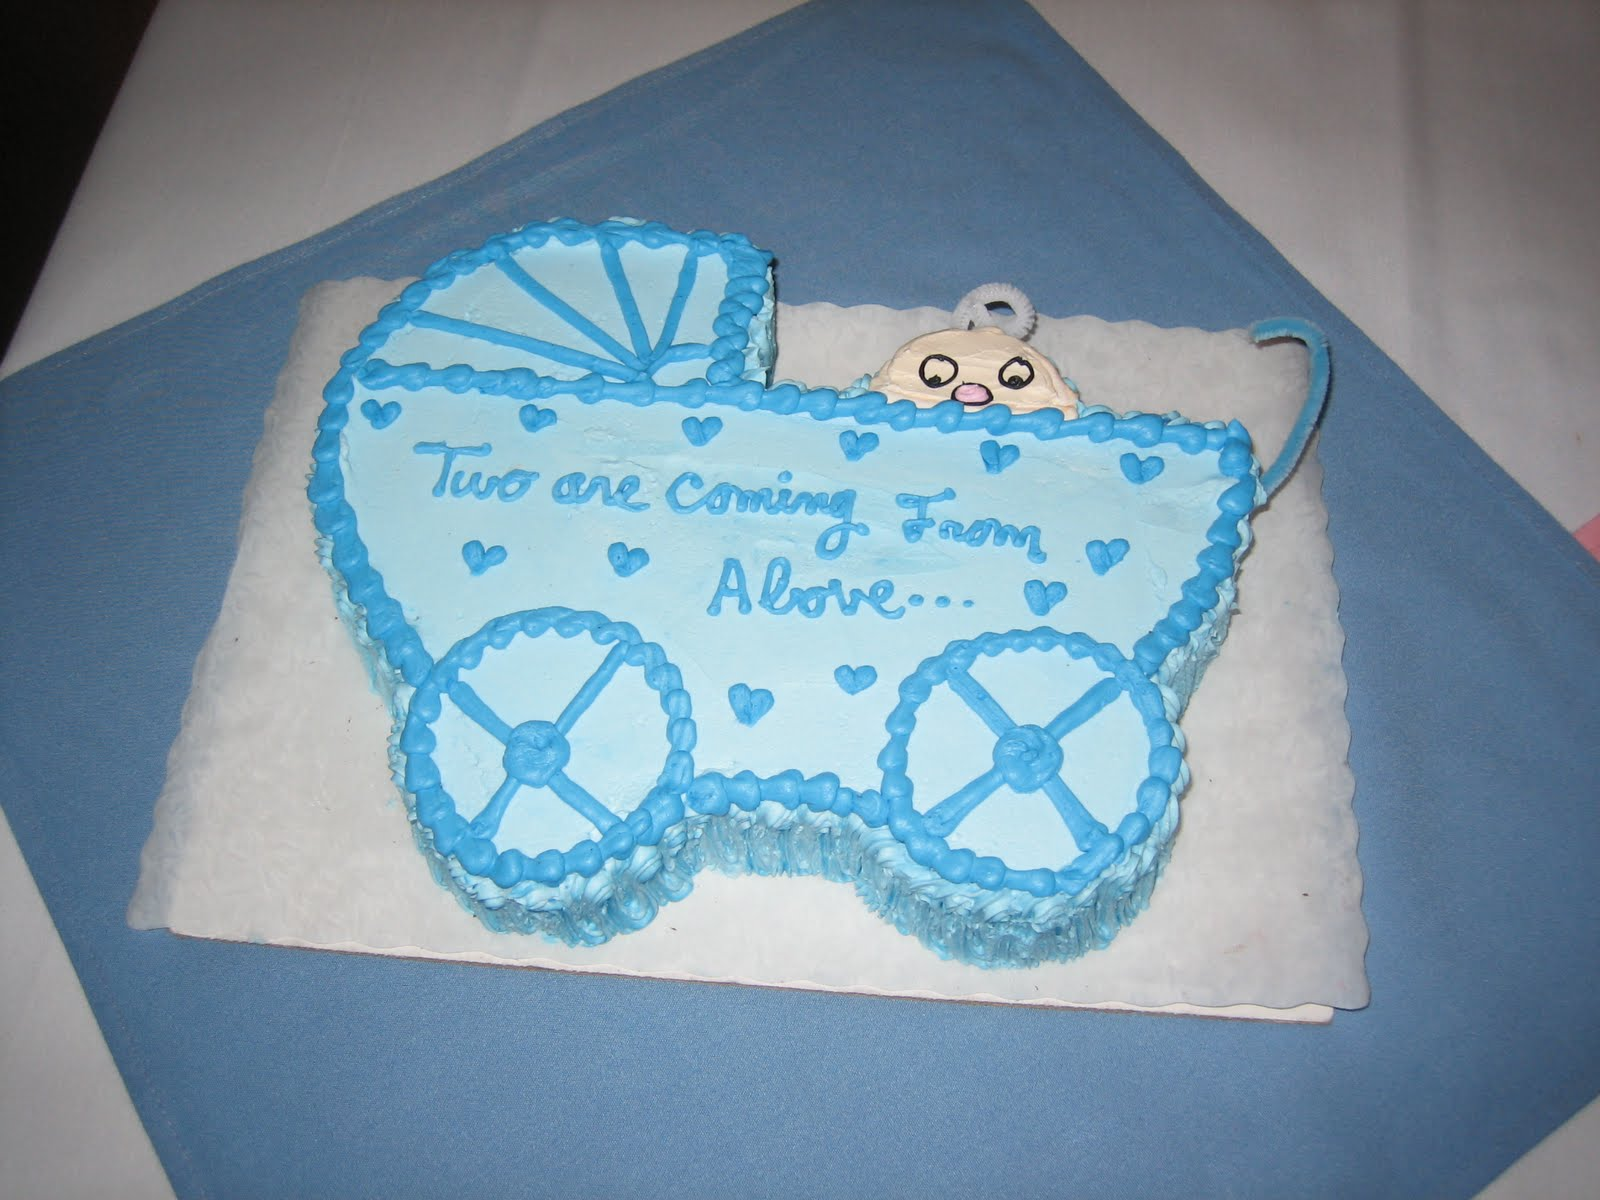 Sayings For Baby Shower Cakessayings For Baby Shower Cakes Neat